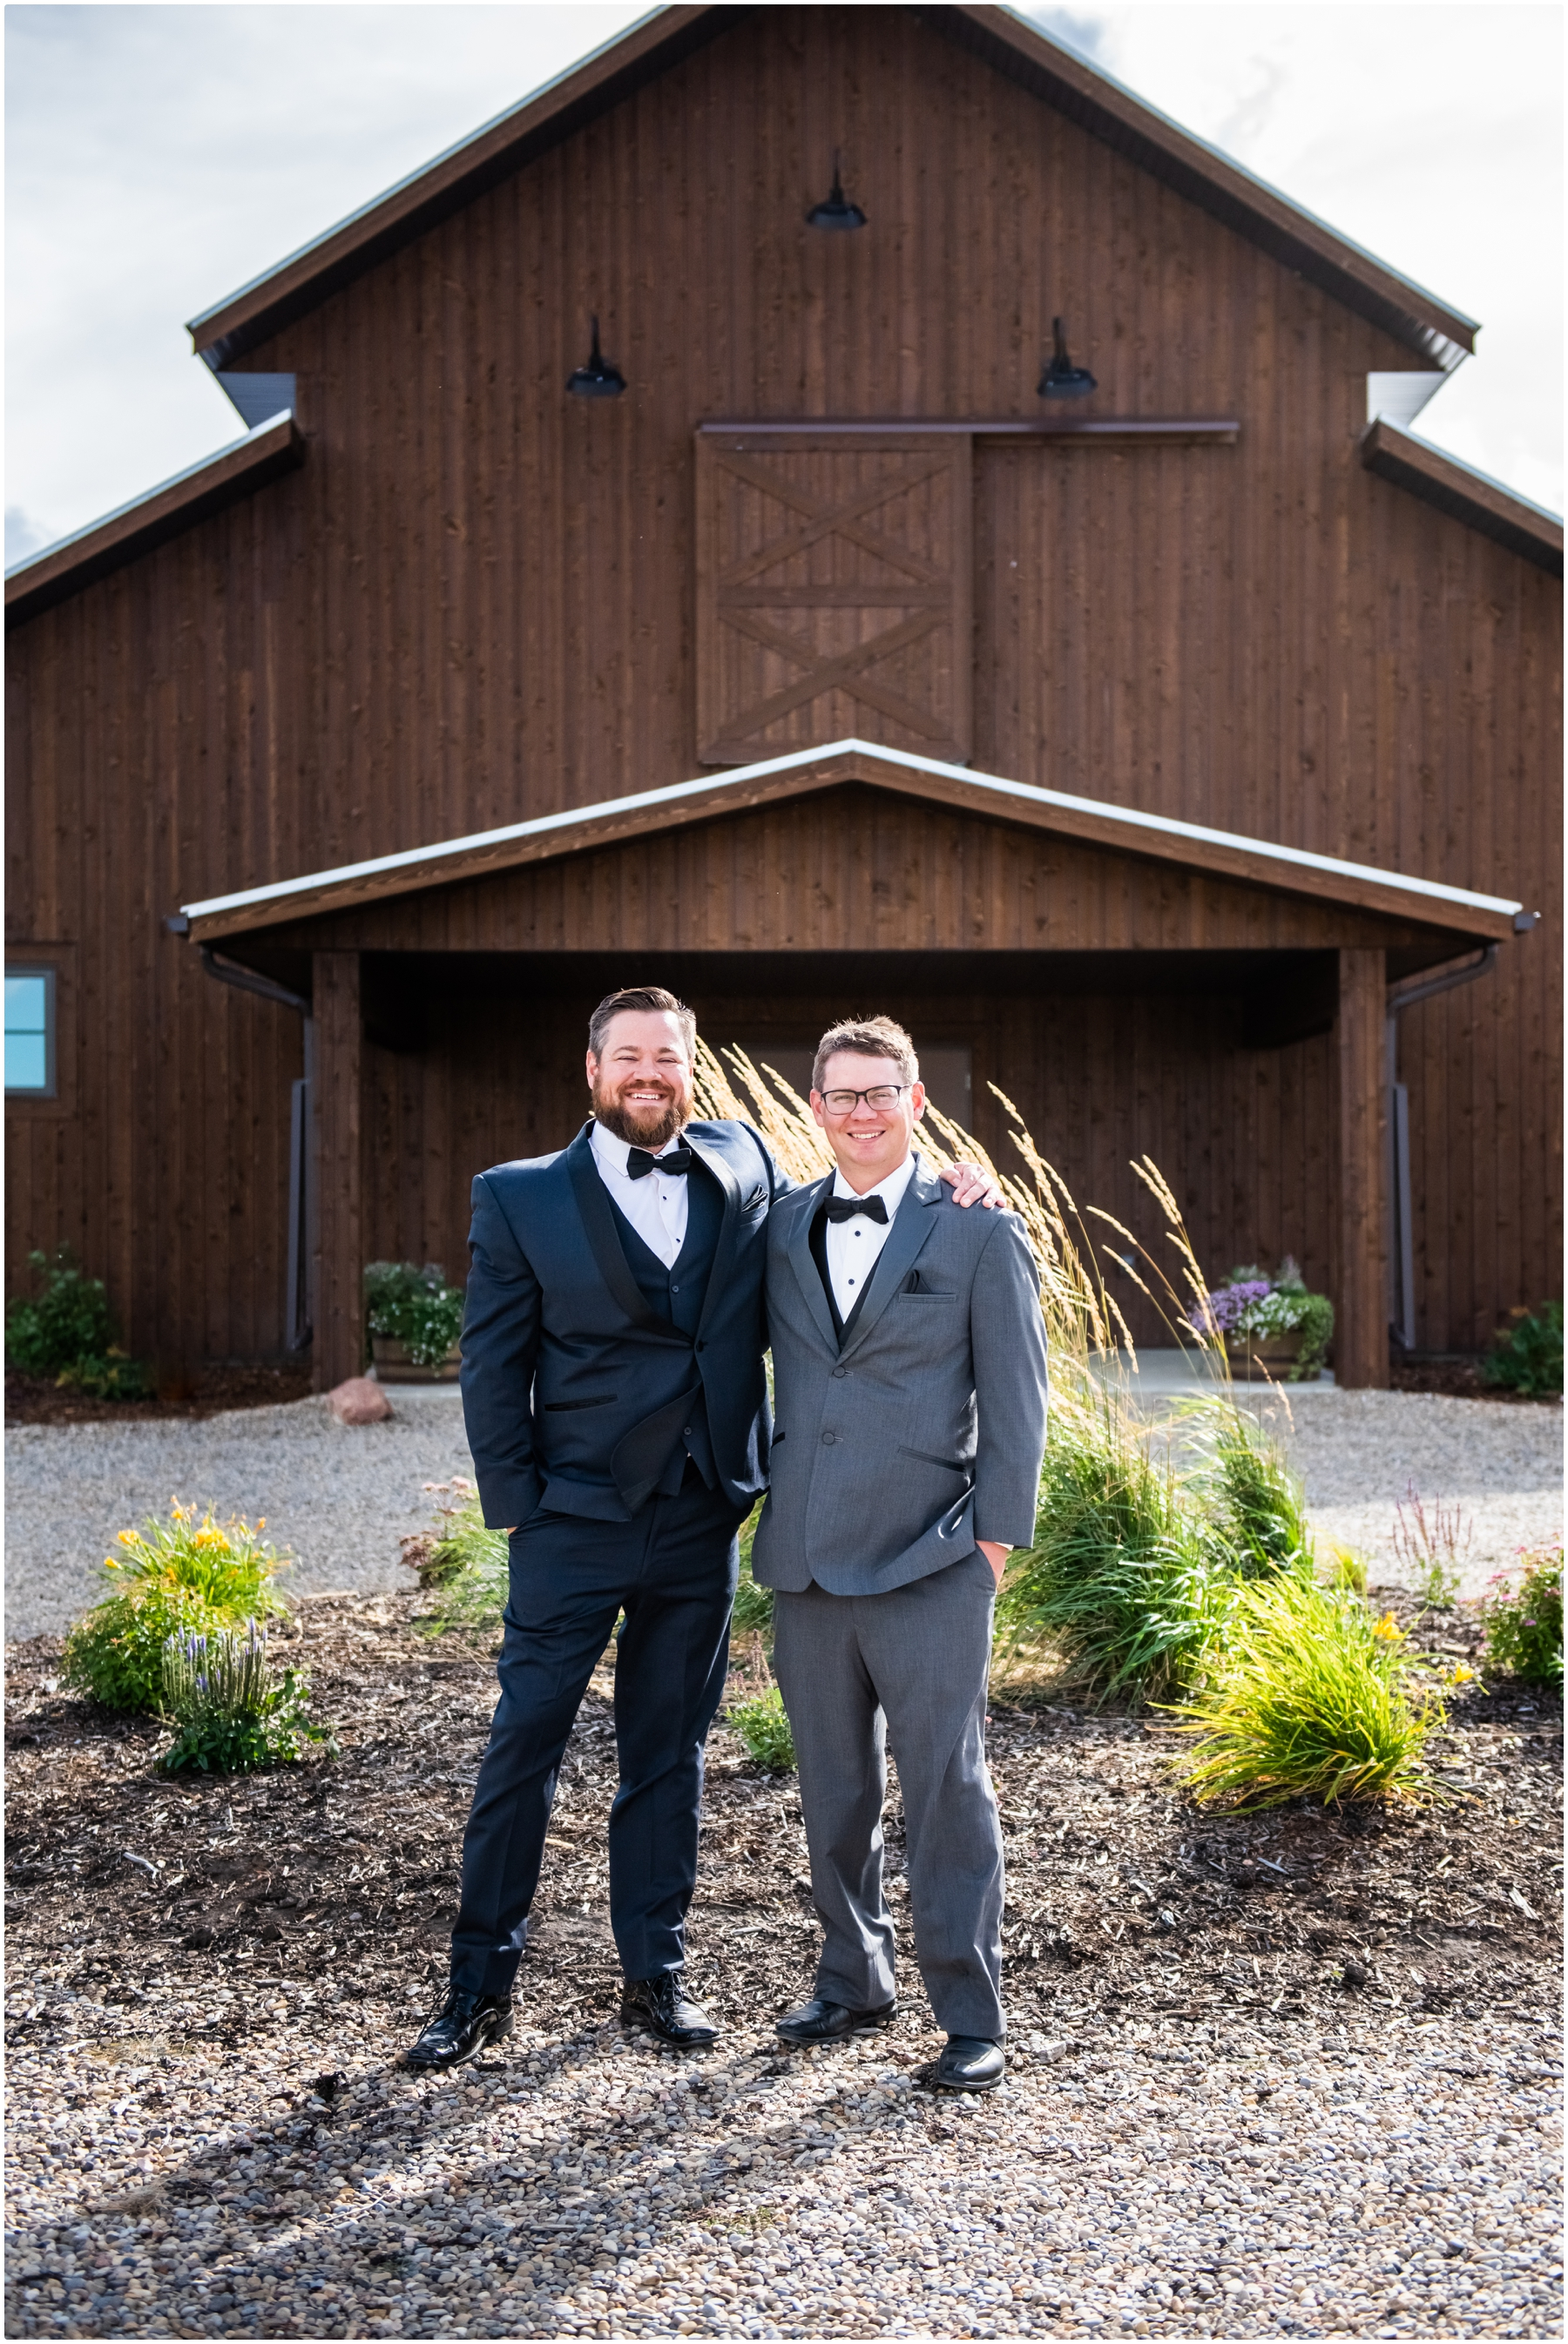 Wedding Party Photography - Sweet Haven Barn